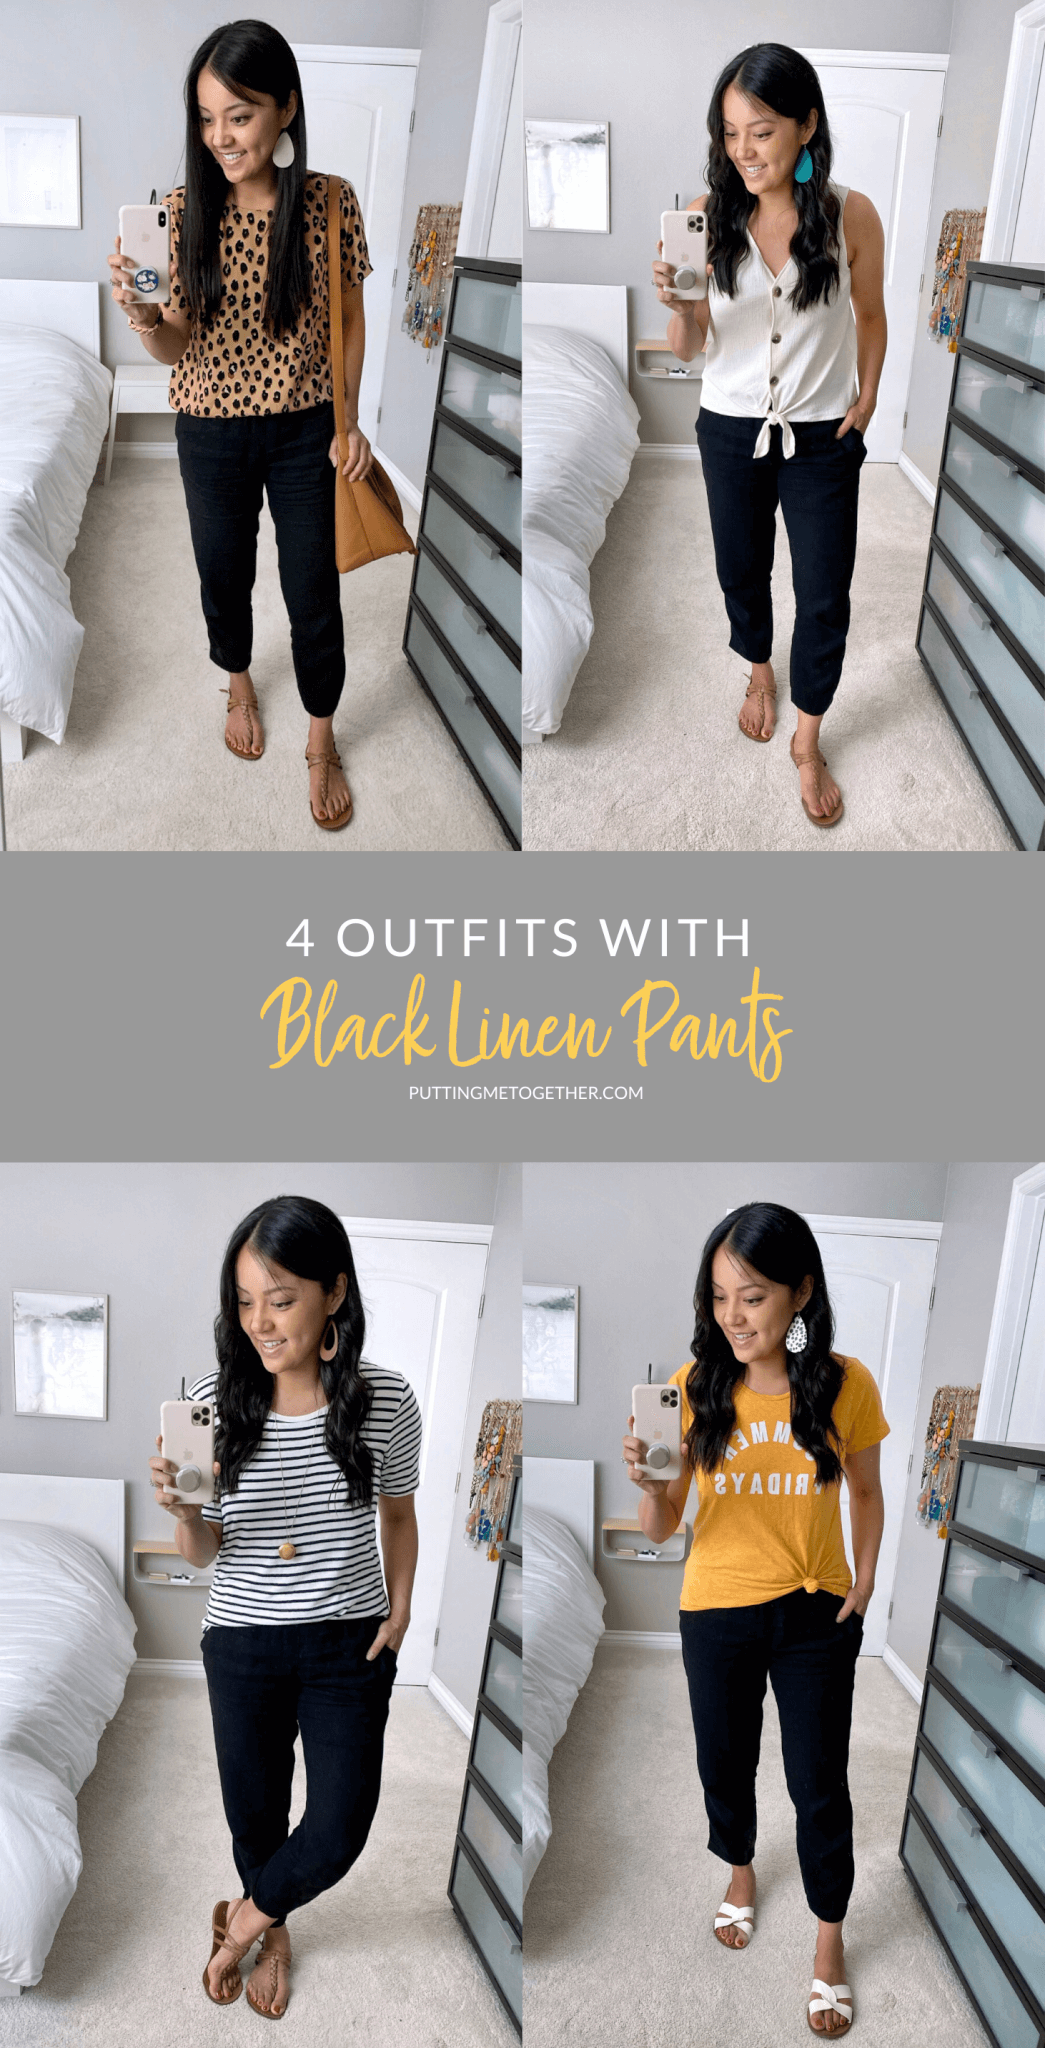 4 Outfits with Black Linen Pants